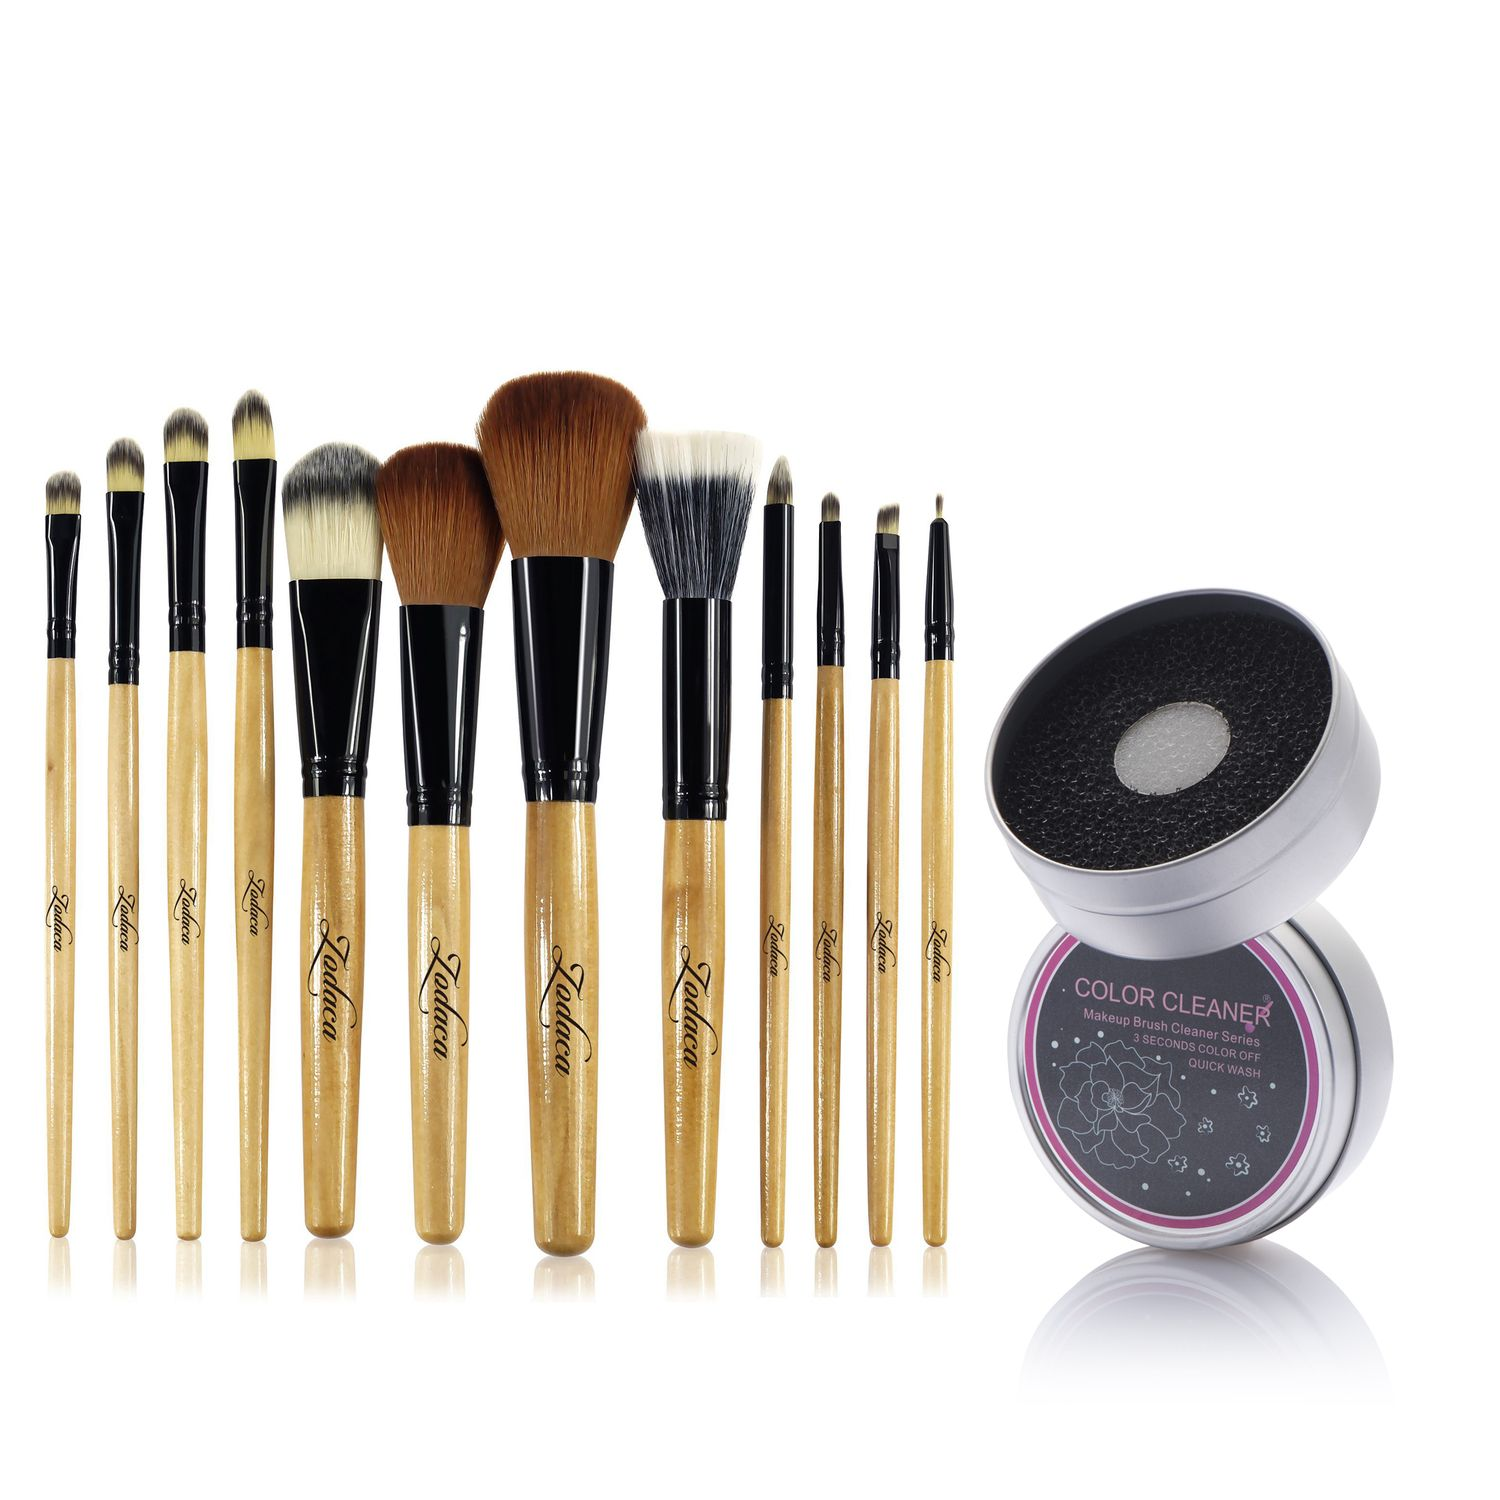 Zodaca 12 pcs Makeup Brushes Kit Set with Leopard Cosmetic Bag (12 count) Foundation Blending Eyeliner Highlighter Lip Highlighting Contouring Tools + Switch Duo Sponge Color Cleaner